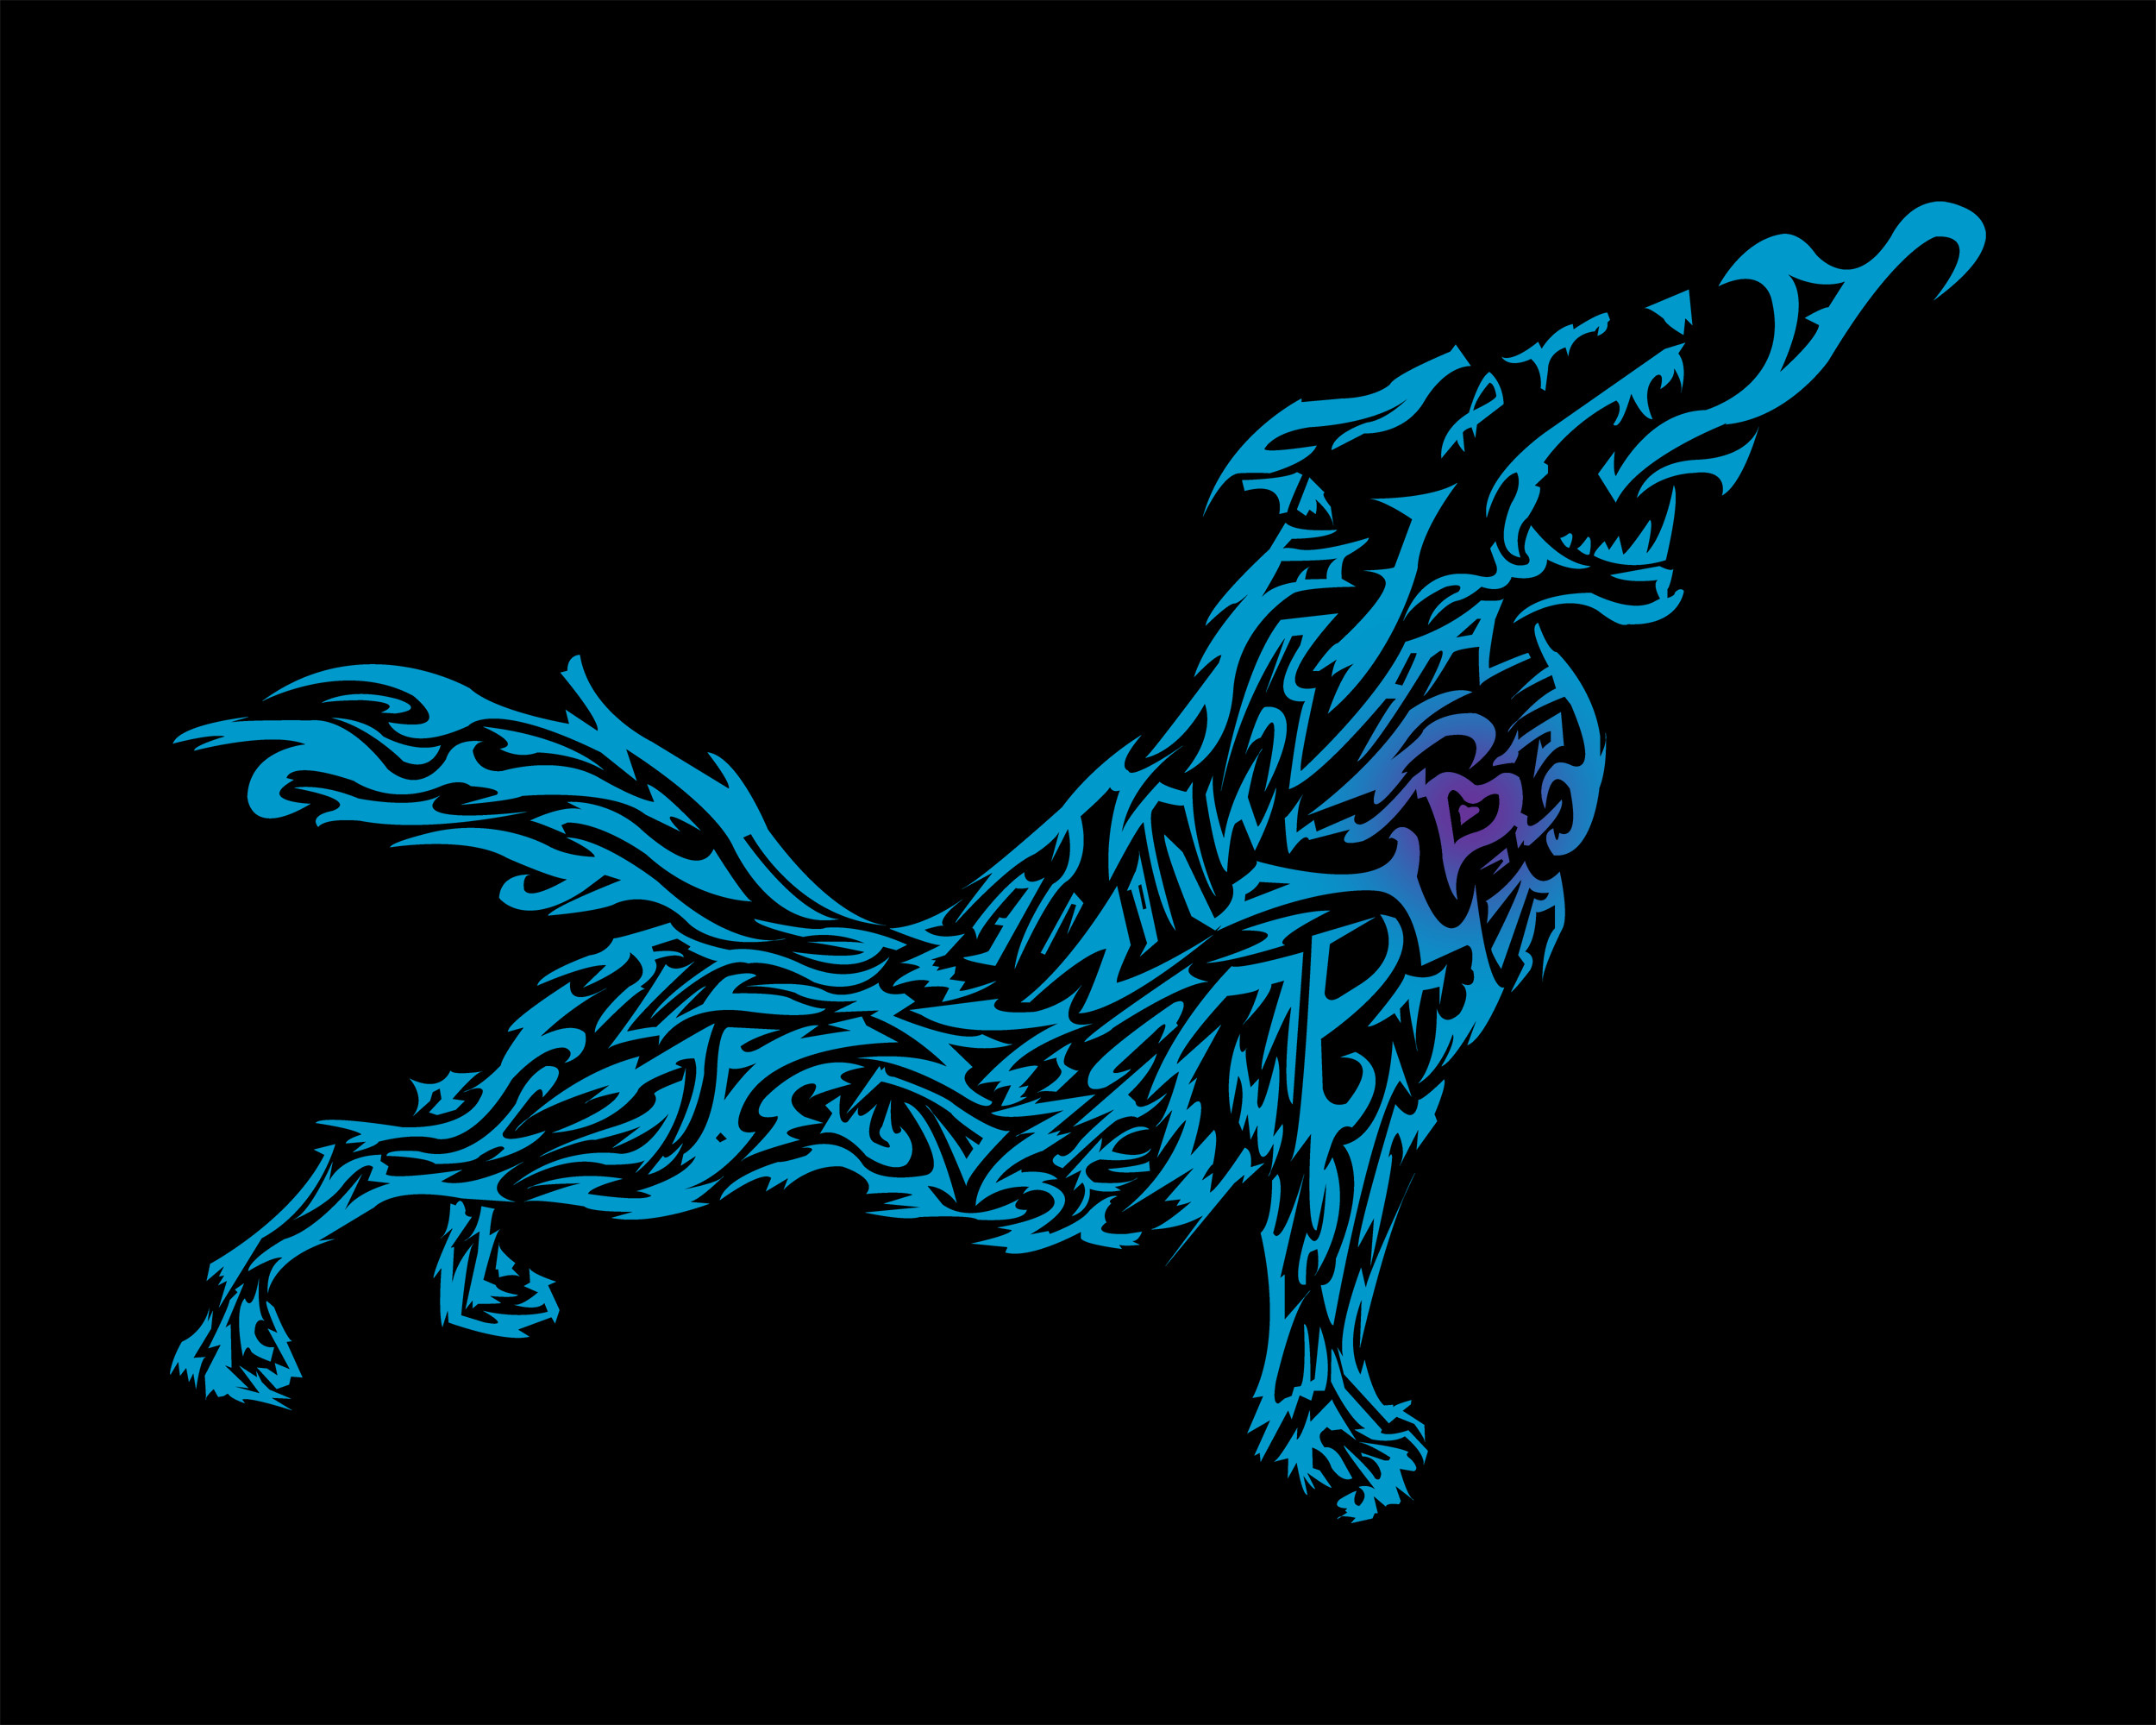 2500x2000 Tribal Wolf Wallpapers For Mac Desktop 2500 X 2000 547 KB